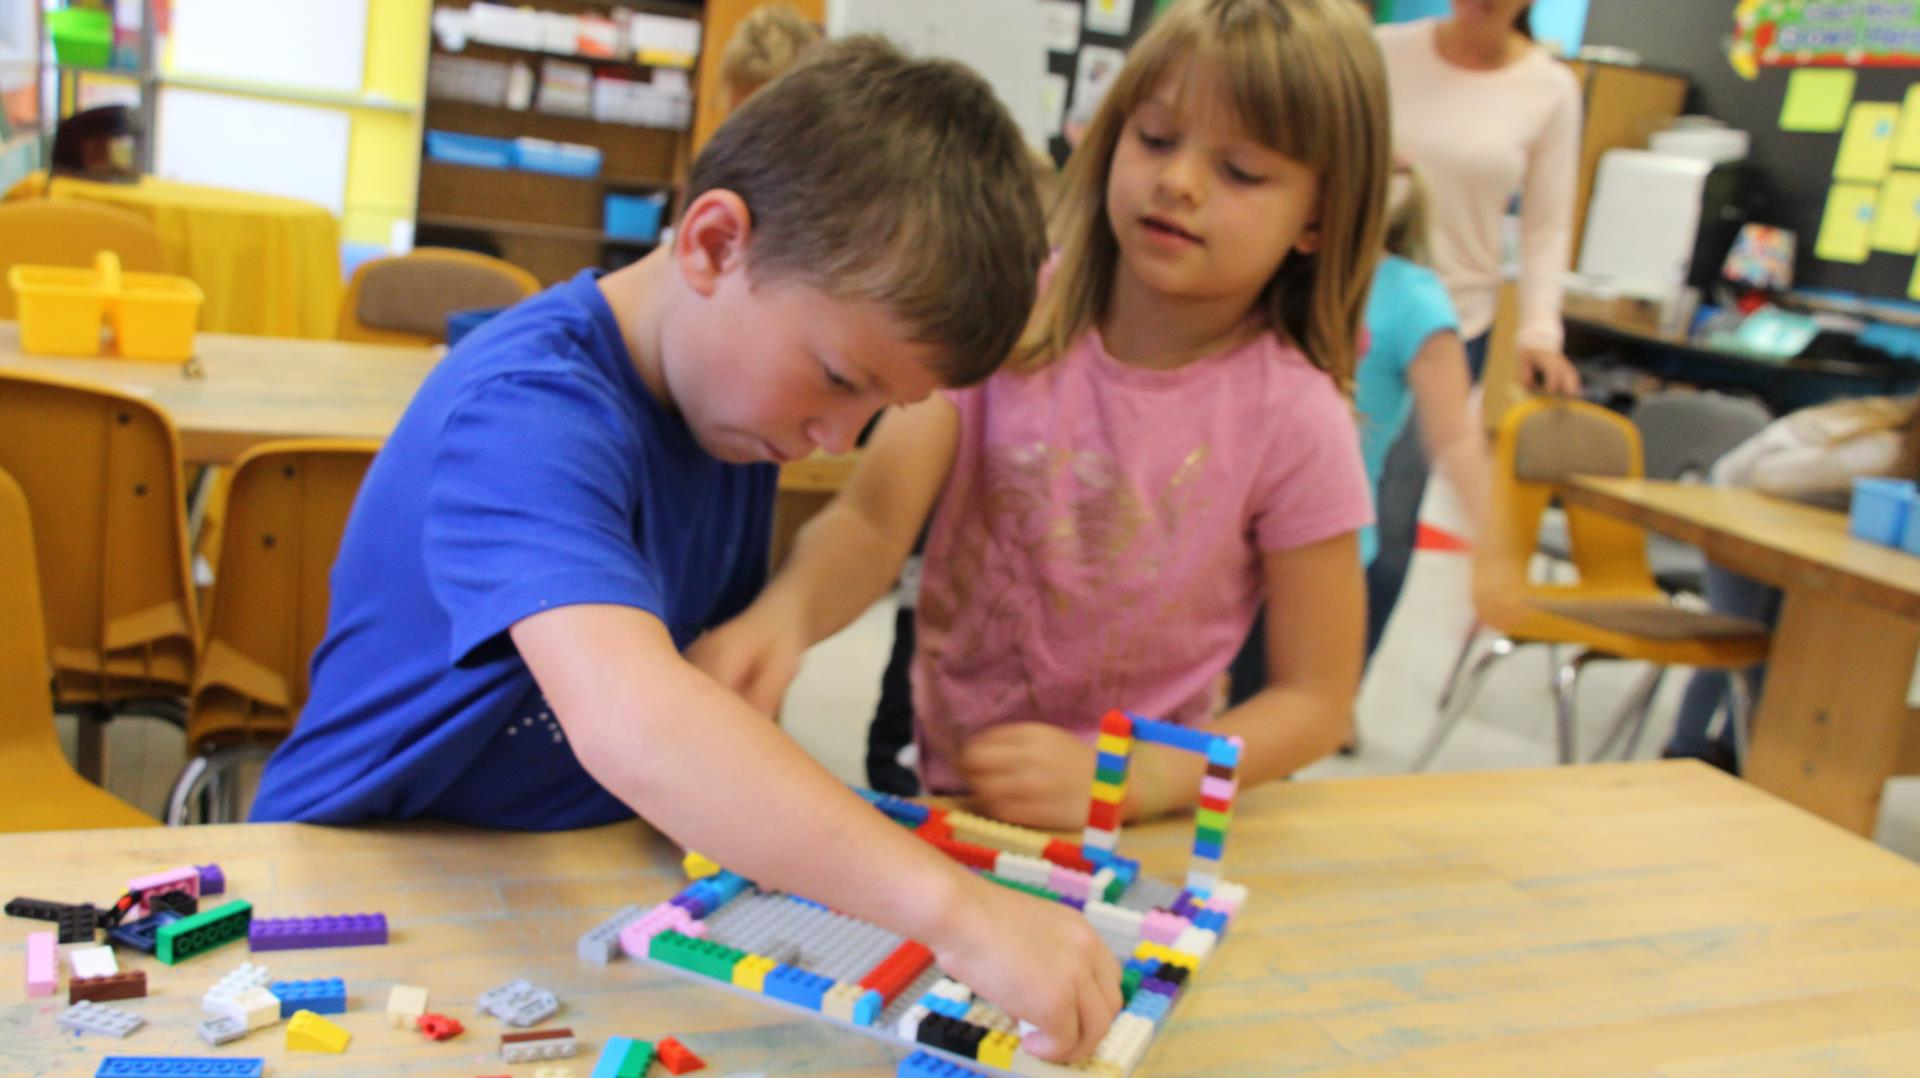 A young boy and young girl playing with lego blocks